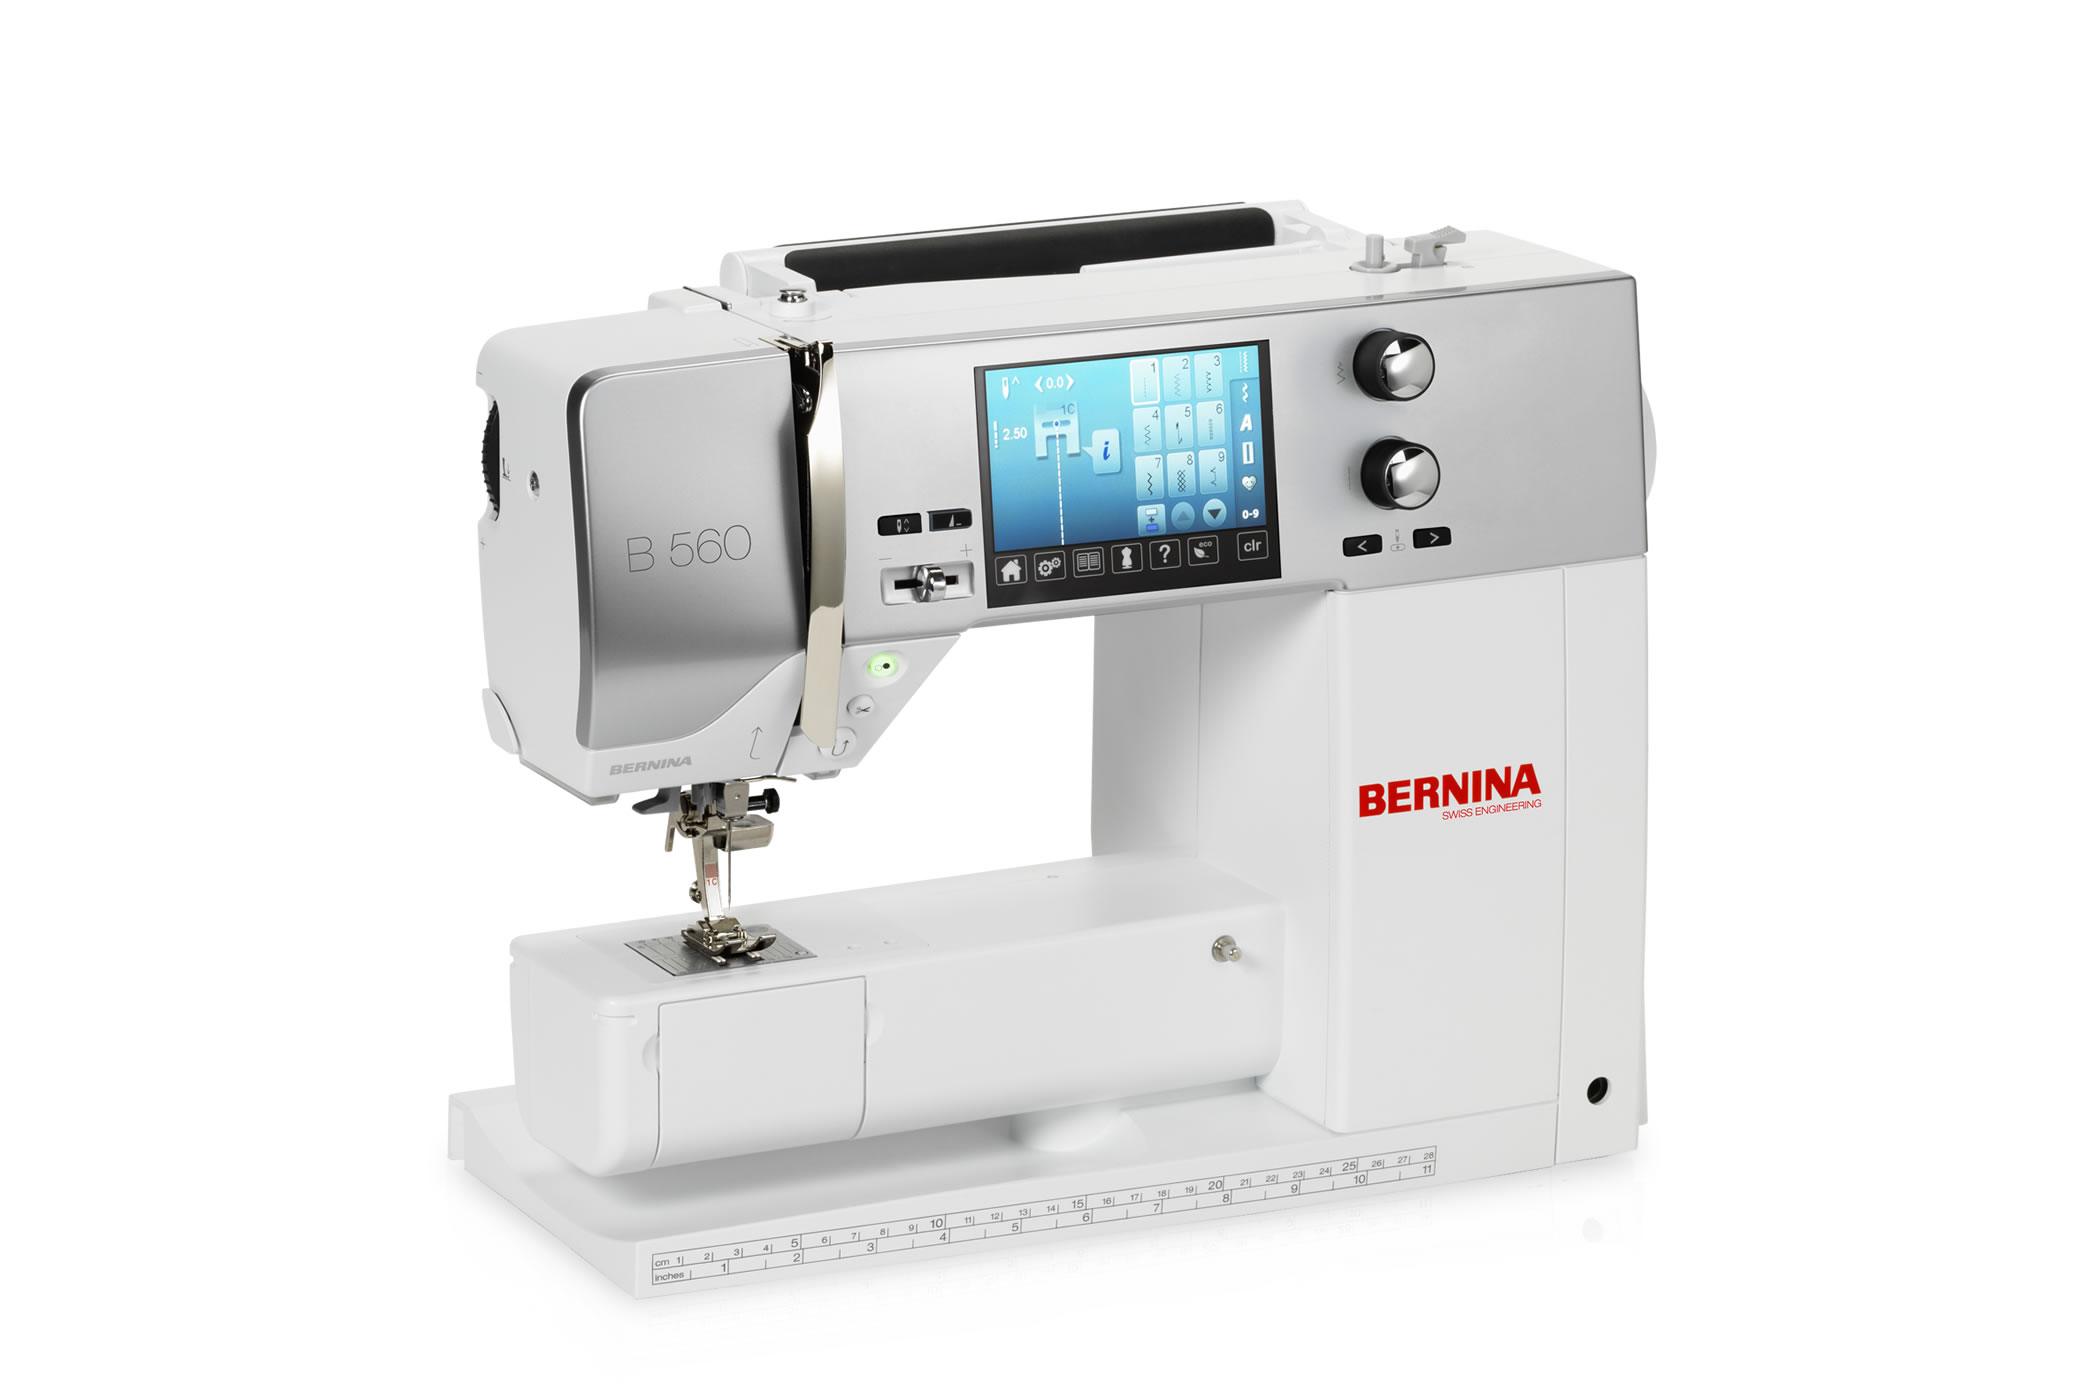 BERNINA 560 (without embroidery module)